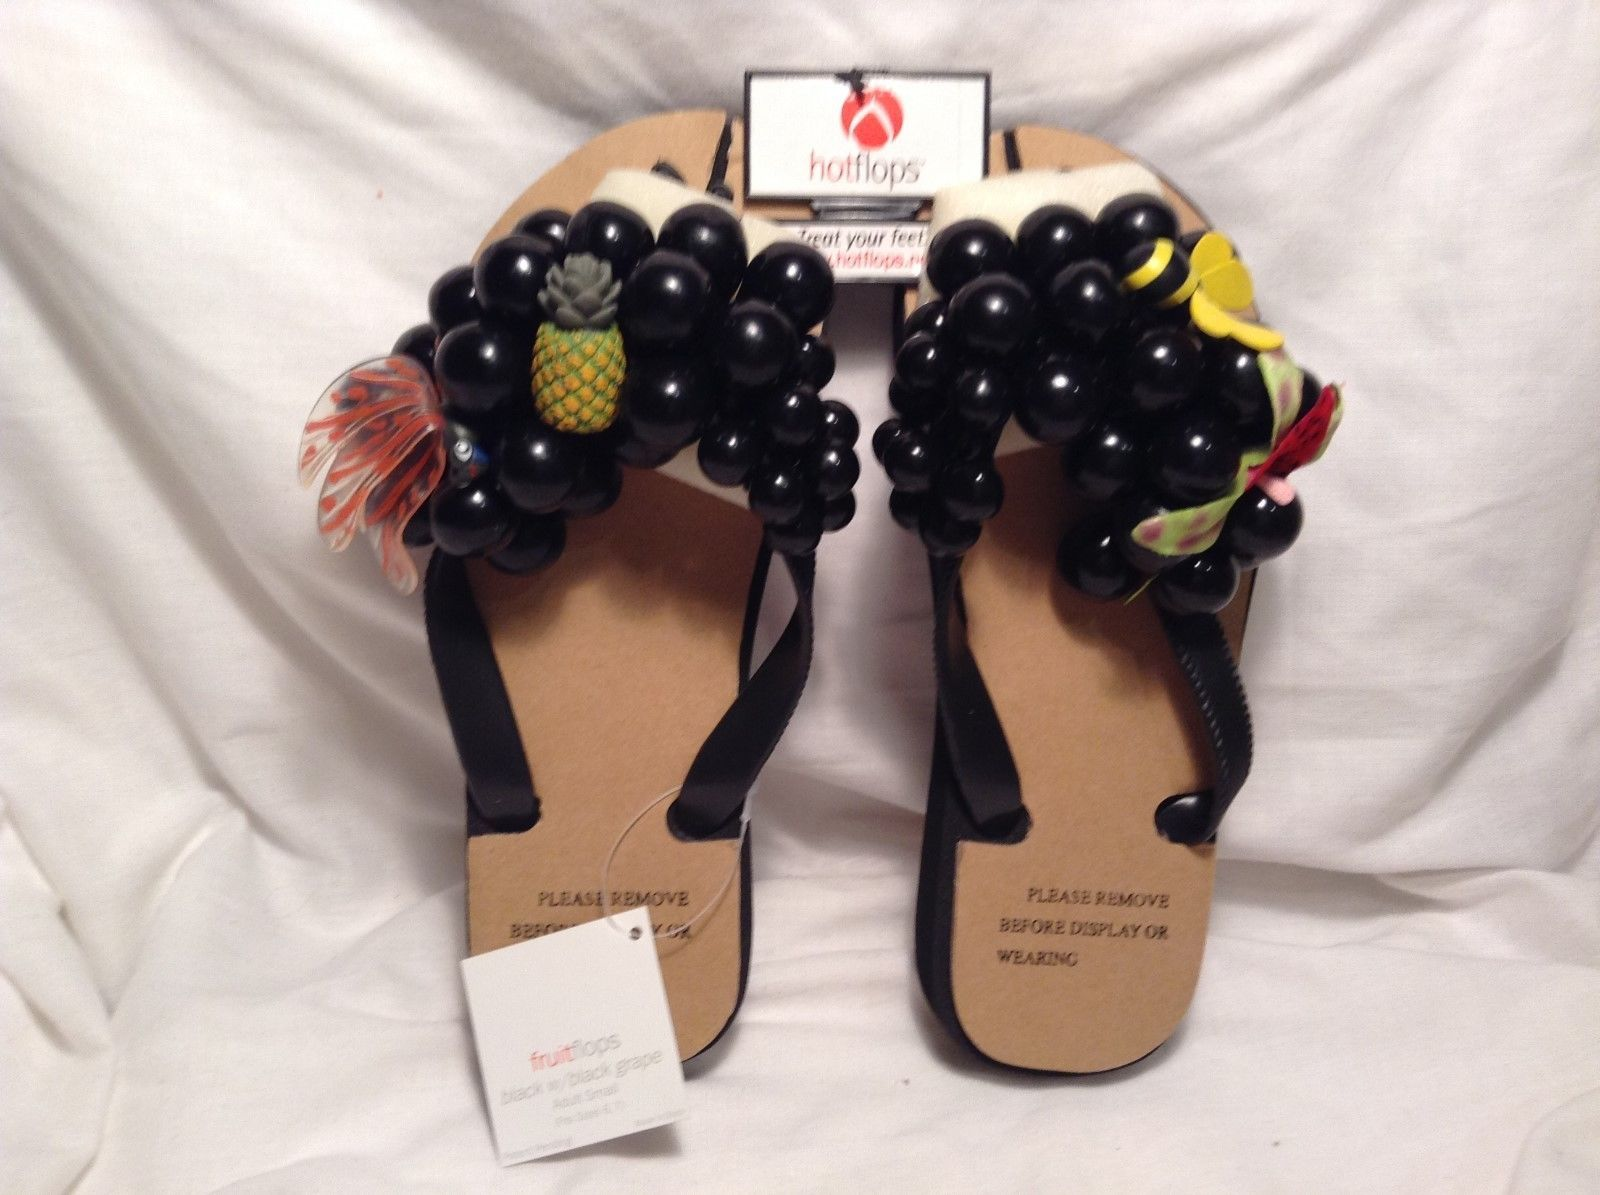 NEW Hot Flops Black Tropical-themed Flip Flops Sz Adult S 6-7